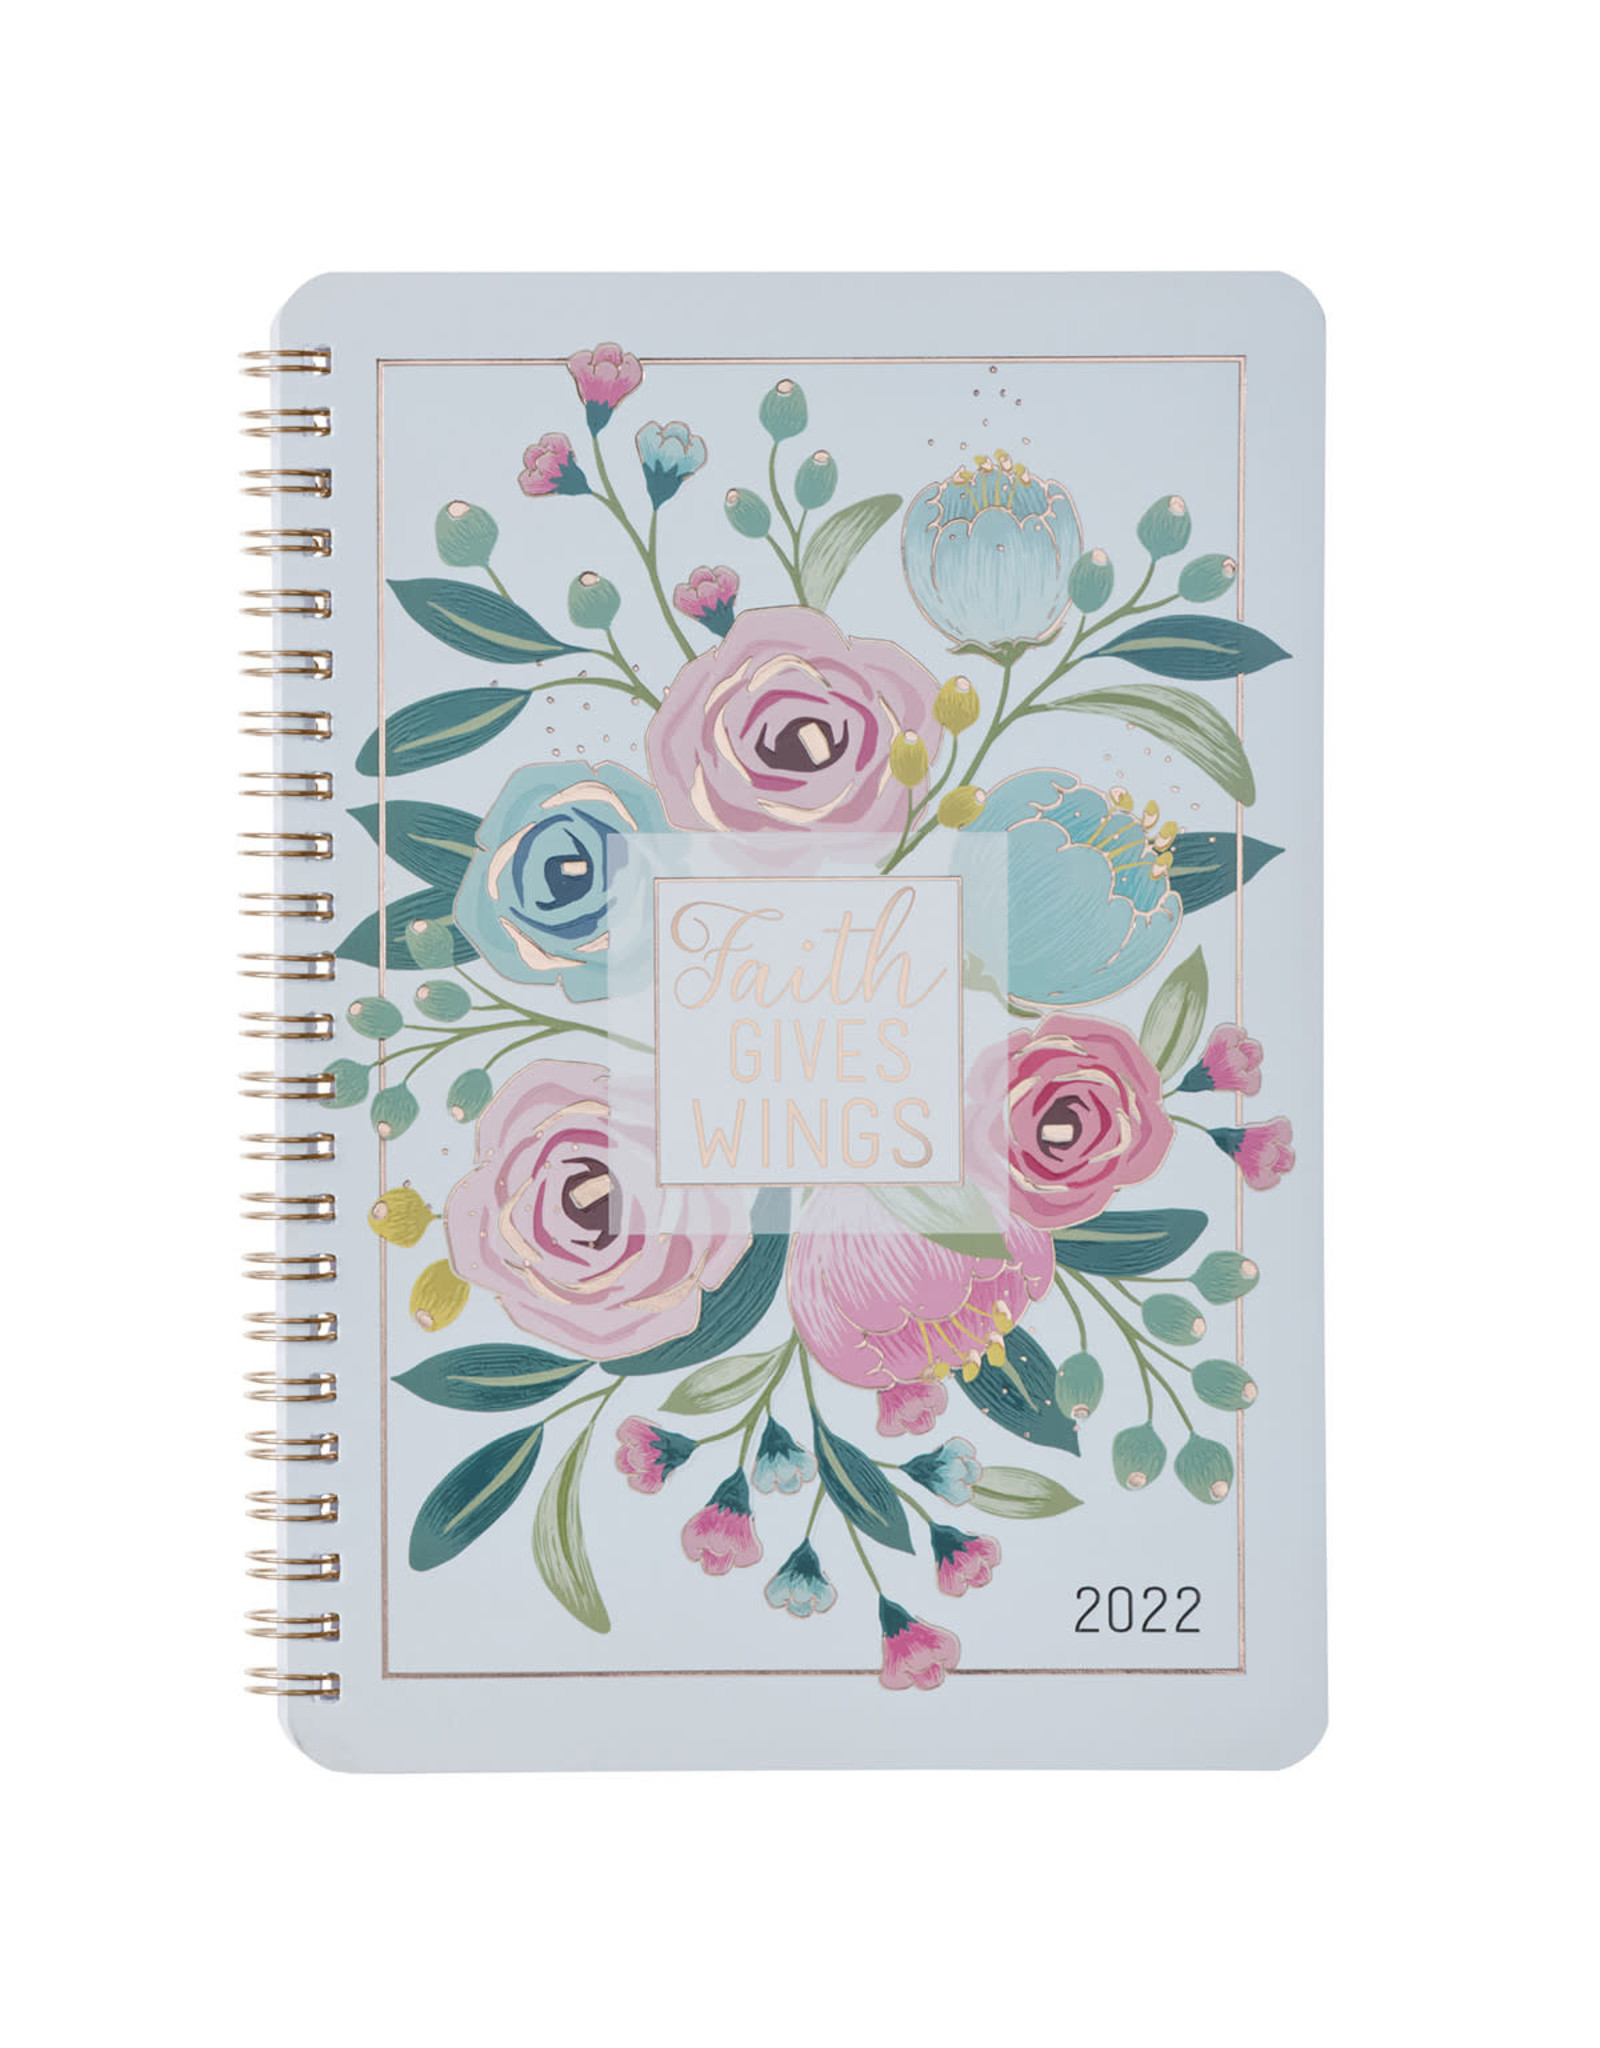 2022 Faith Gives Wings Wirebound Daily Planner